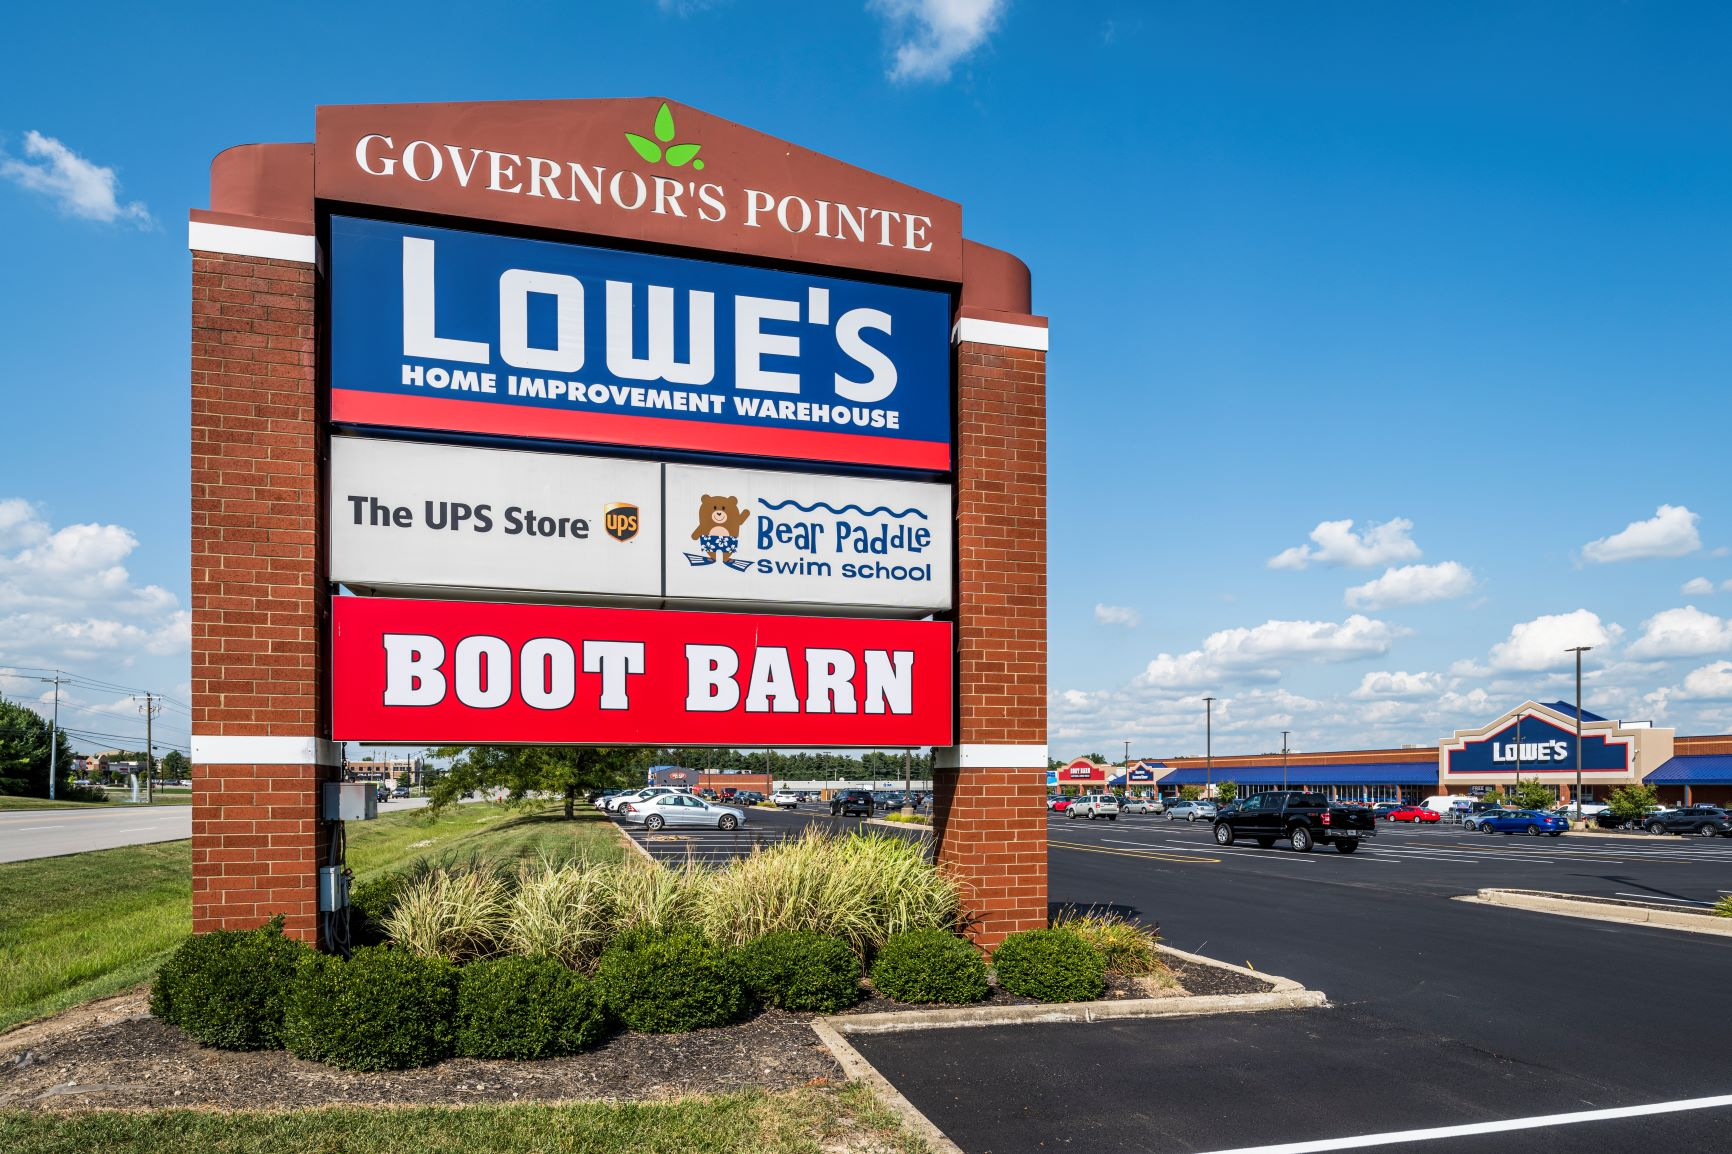 Governor's Pointe sign